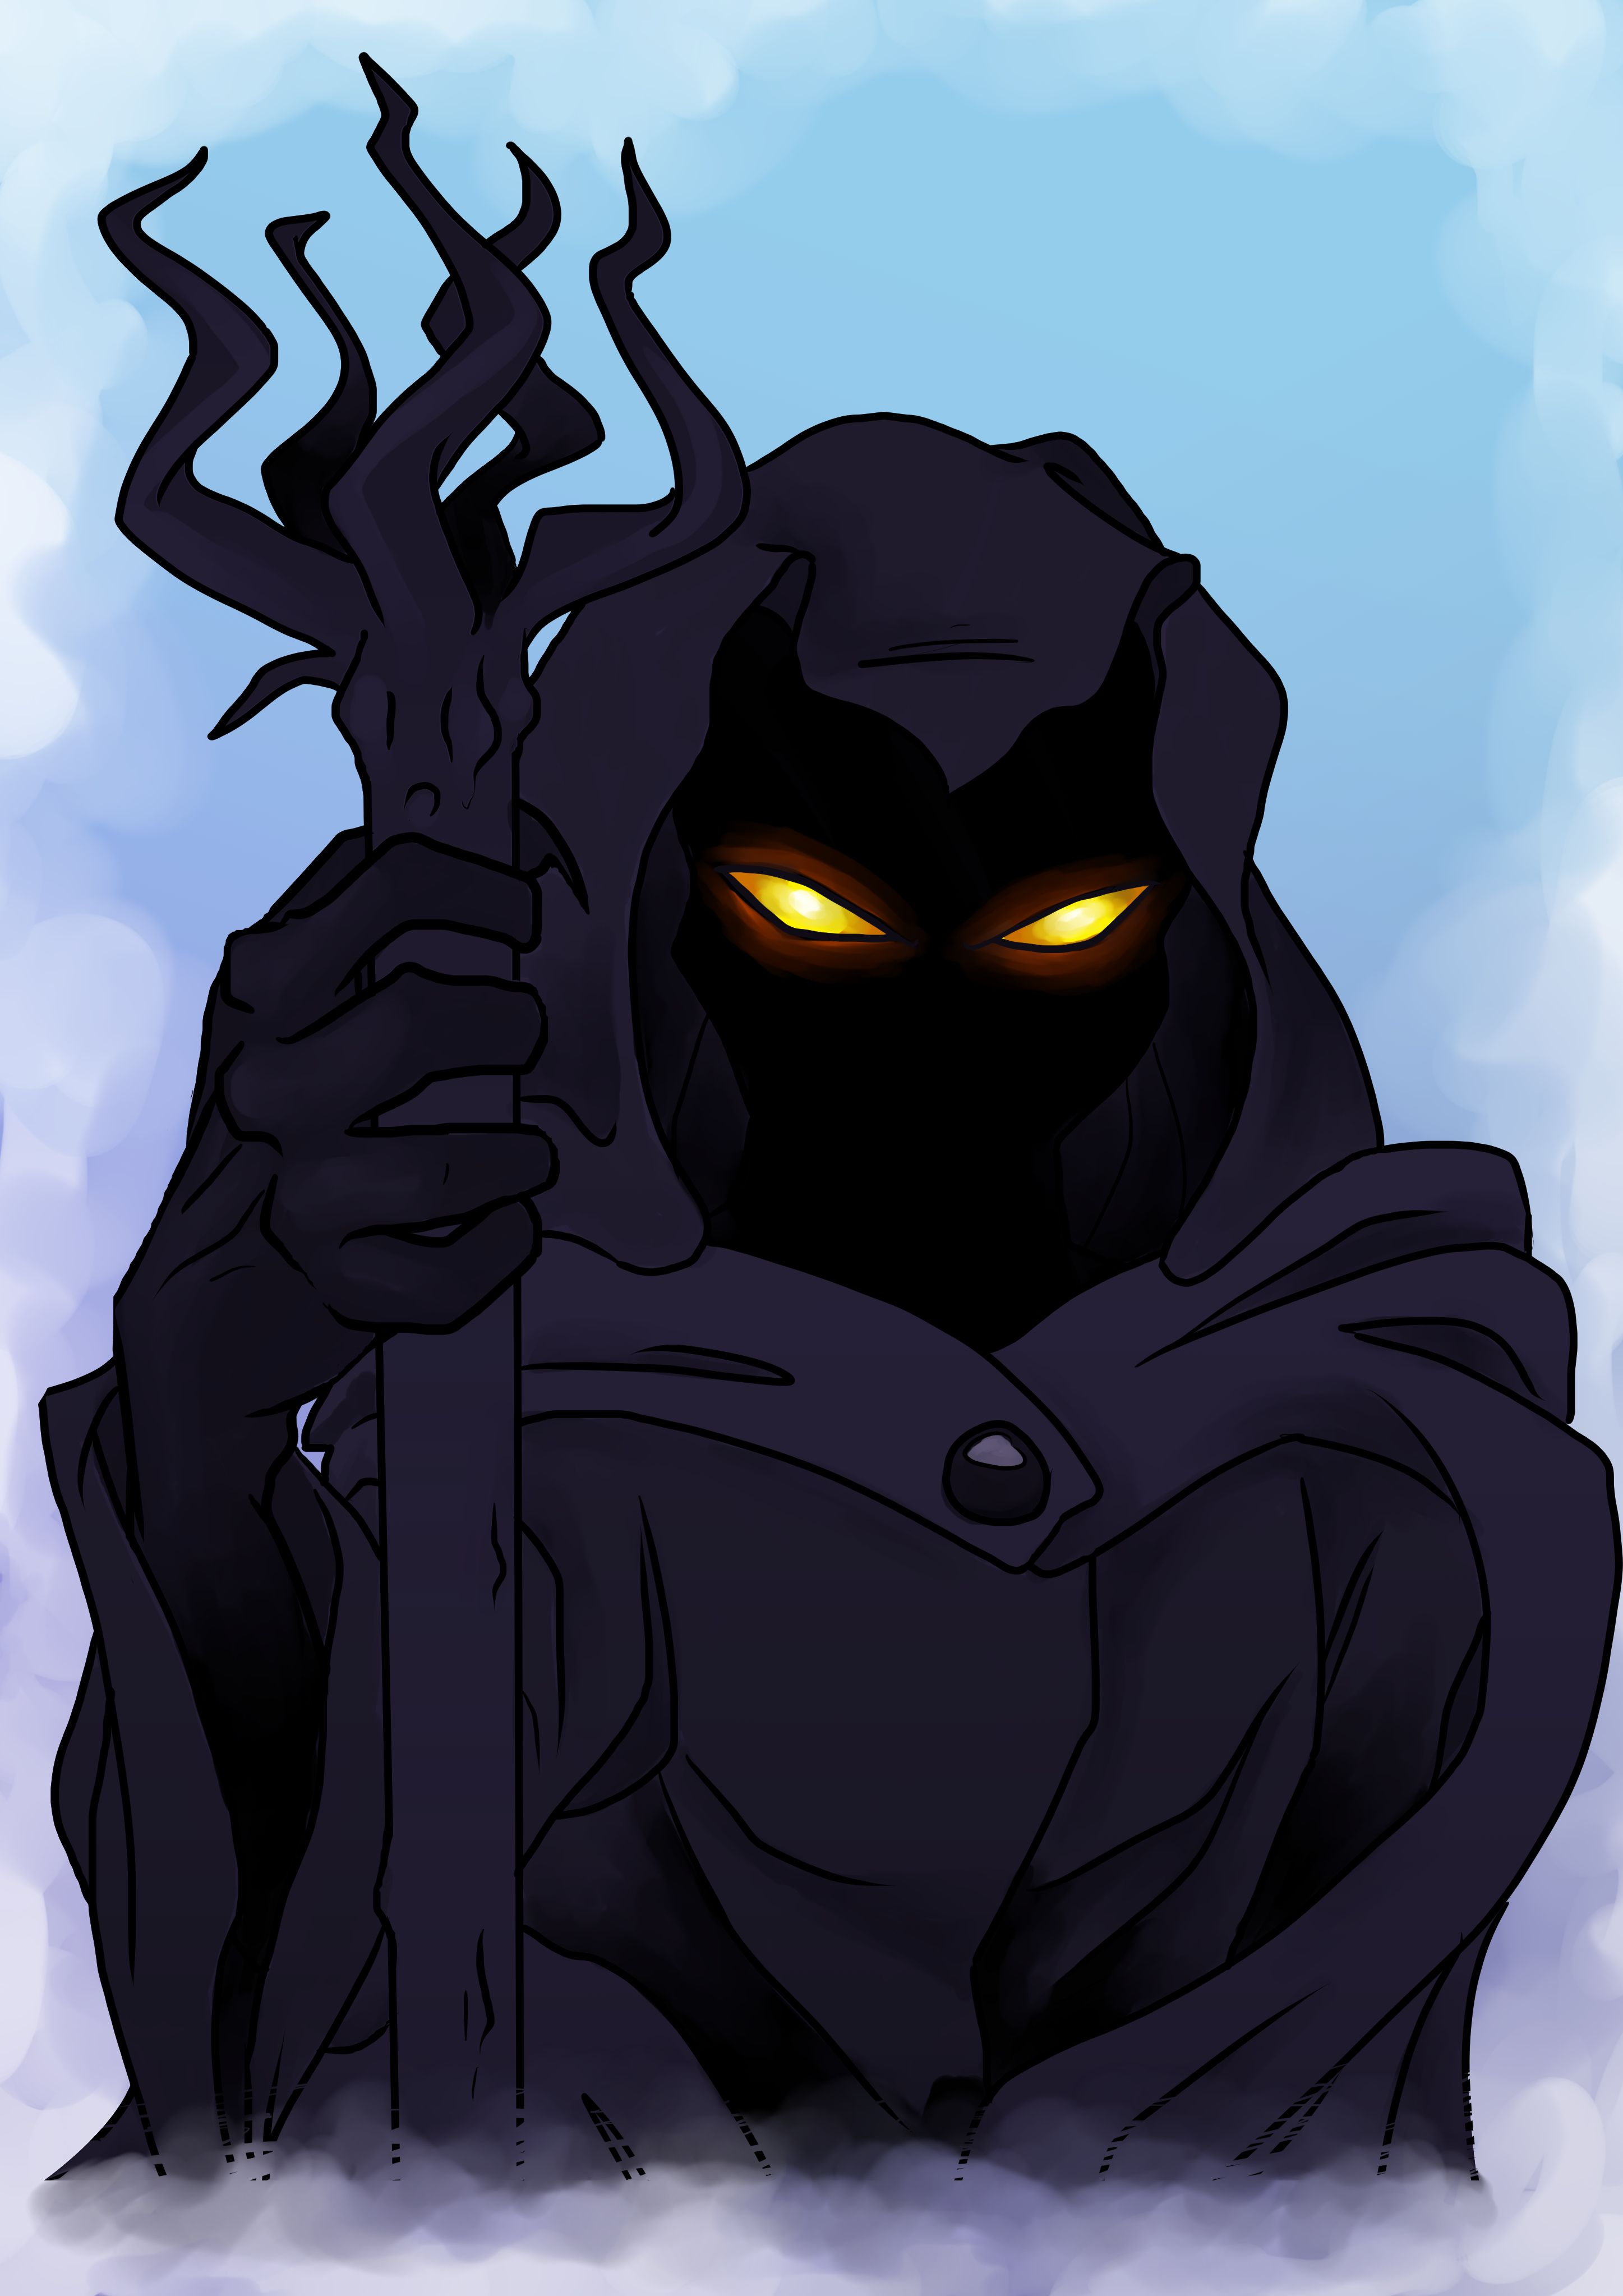 Evil Christmas Characters.The Guardian Of The Mountains The Evil Villain From The